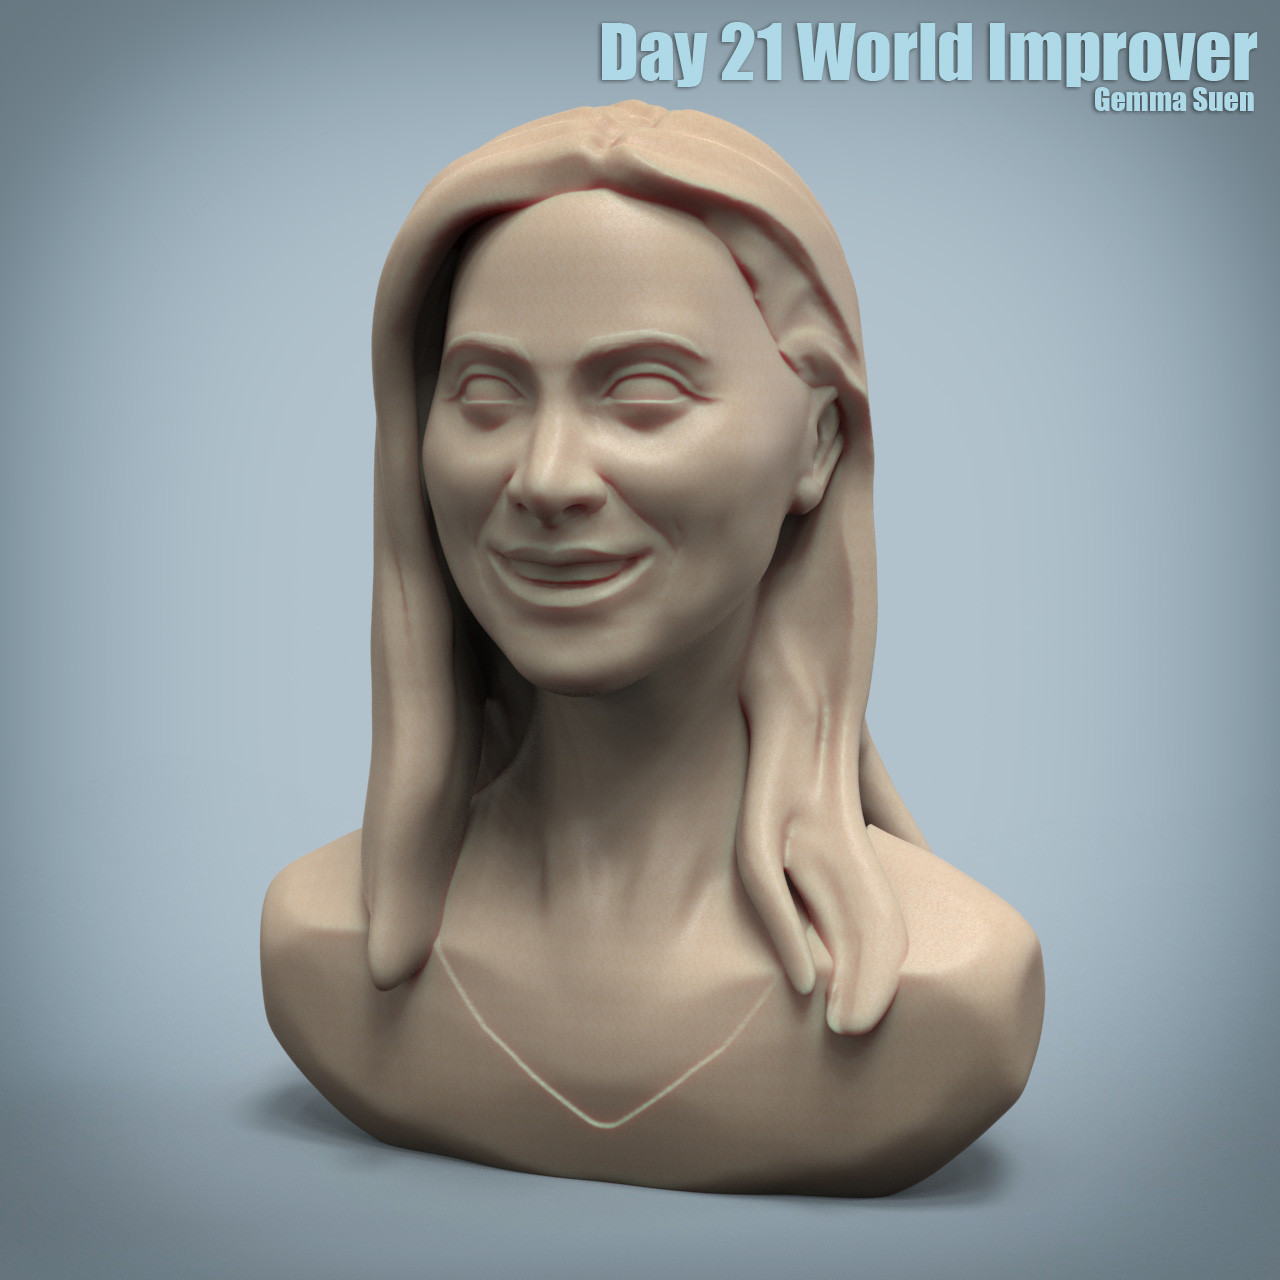 Gemma suen day21 worldimprover